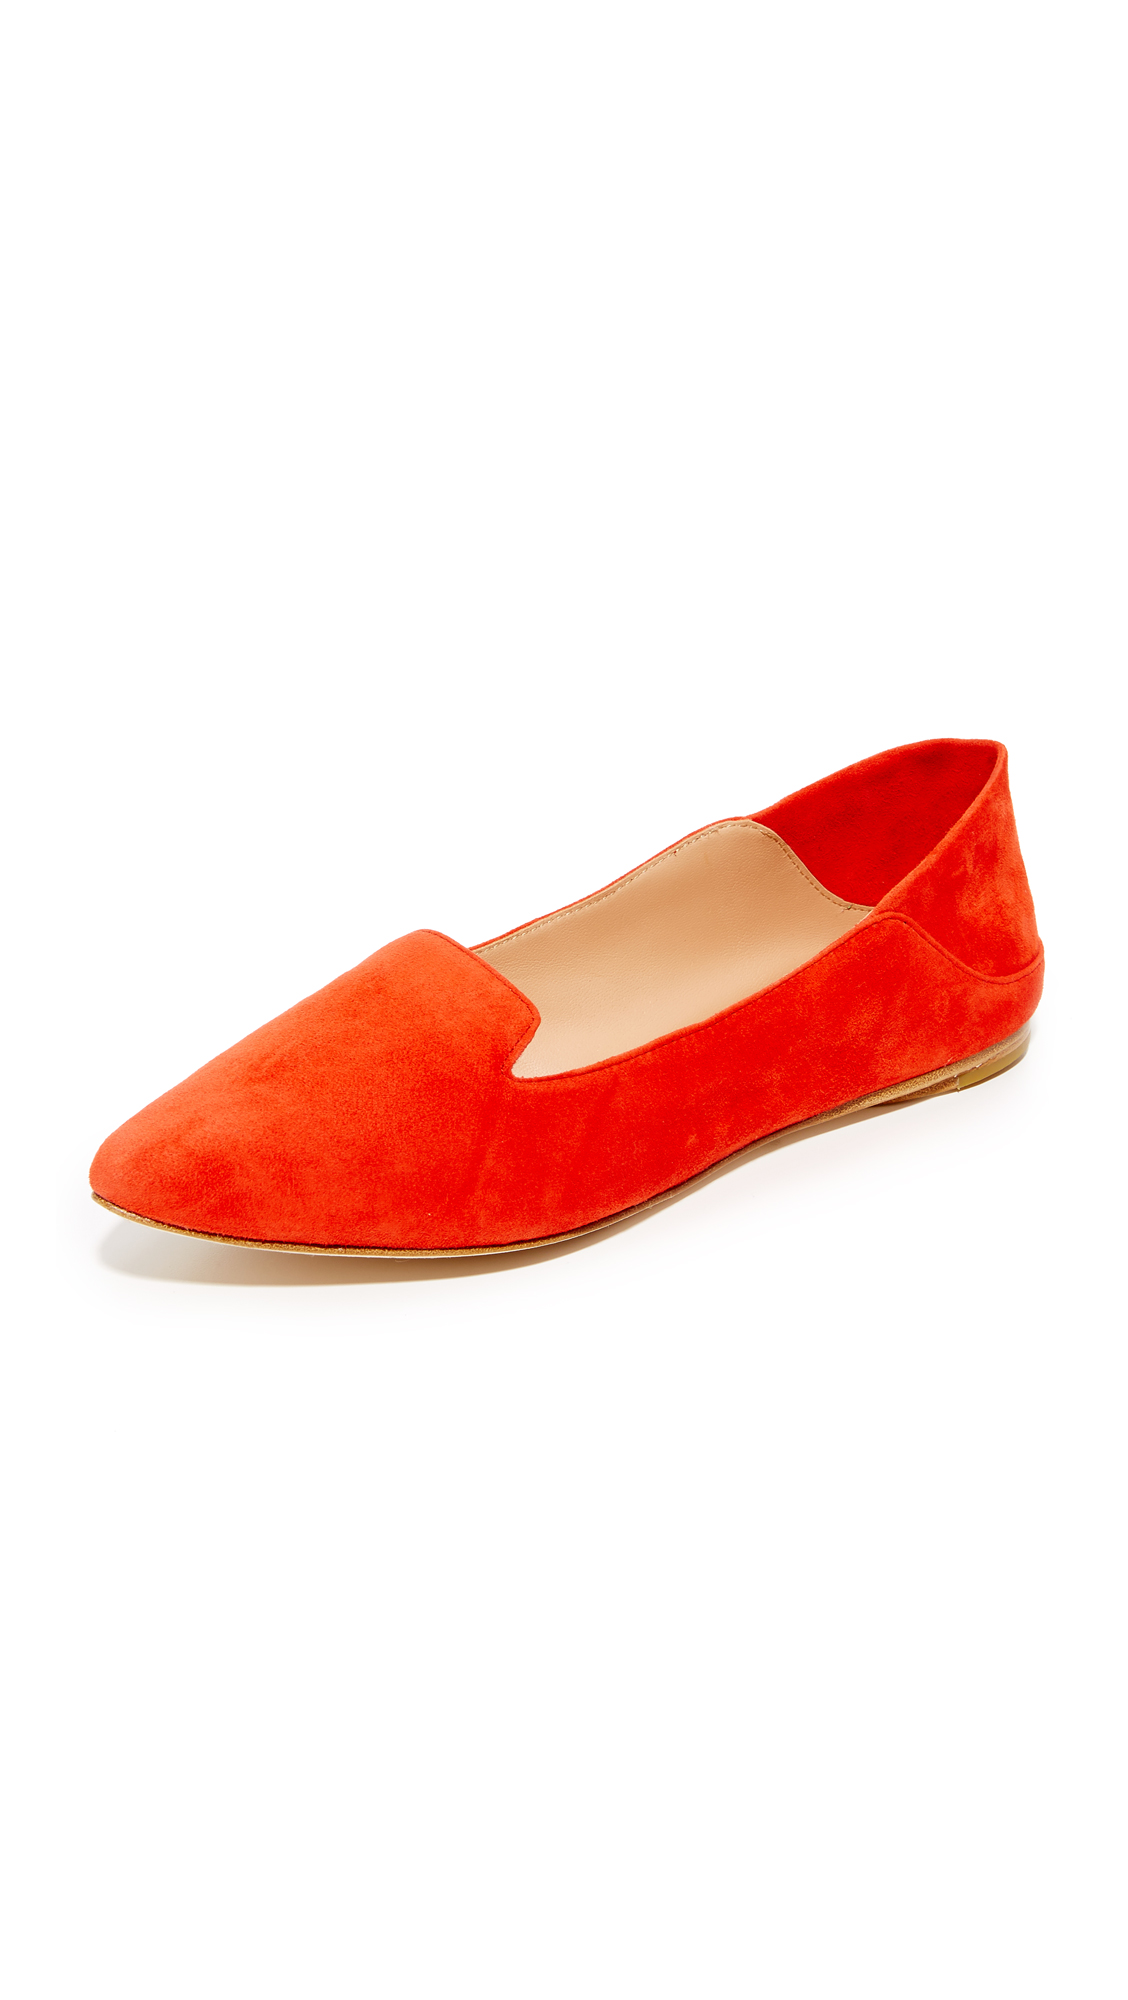 Photo of Sigerson Morrison Valentine Fold Down Flats Coral Red - Sigerson Morrison online